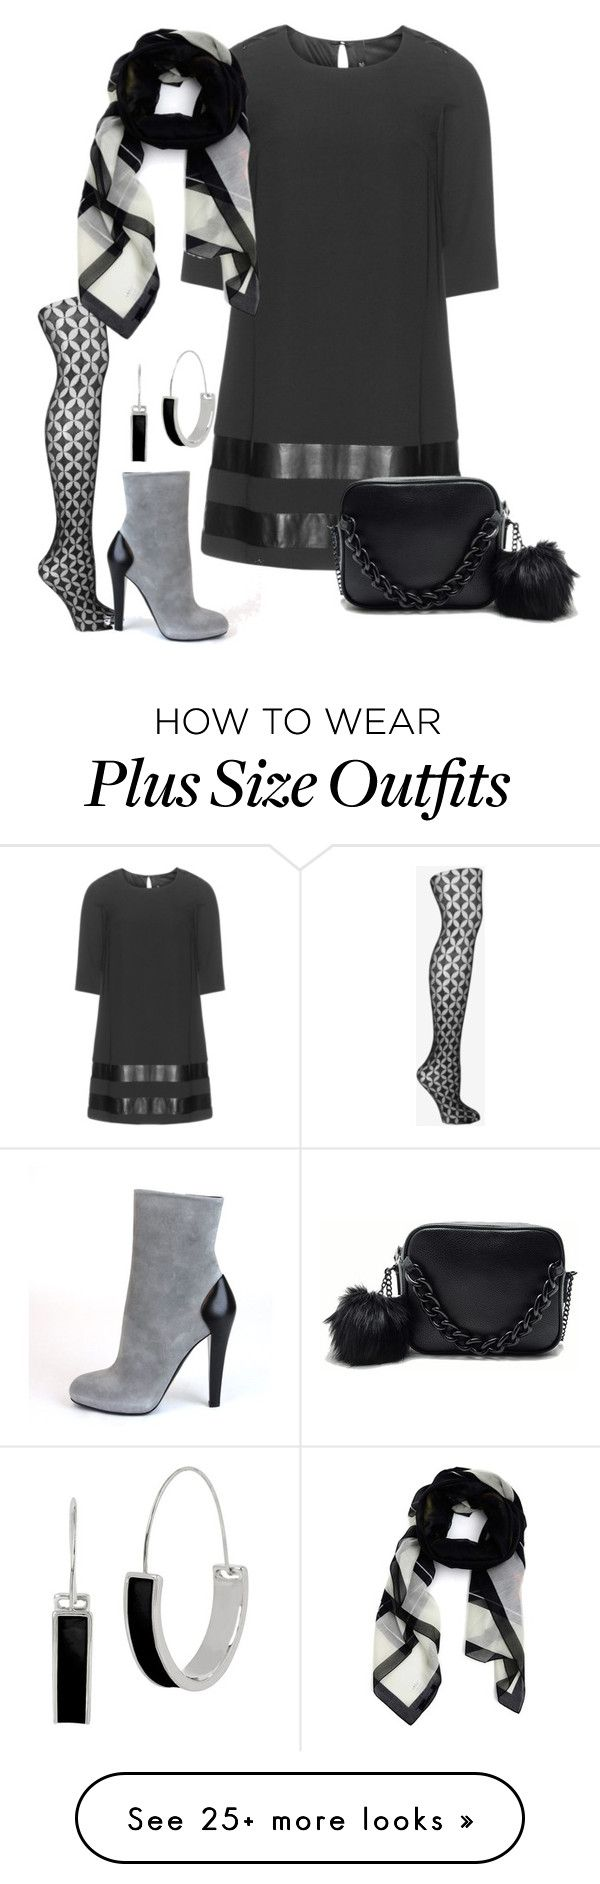 """Still waiting for Spring (plus)"" by kneesaasmom on Polyvore featuring Manon Baptiste, Fogal, Posh Girl, Givenchy and Kenneth Cole"